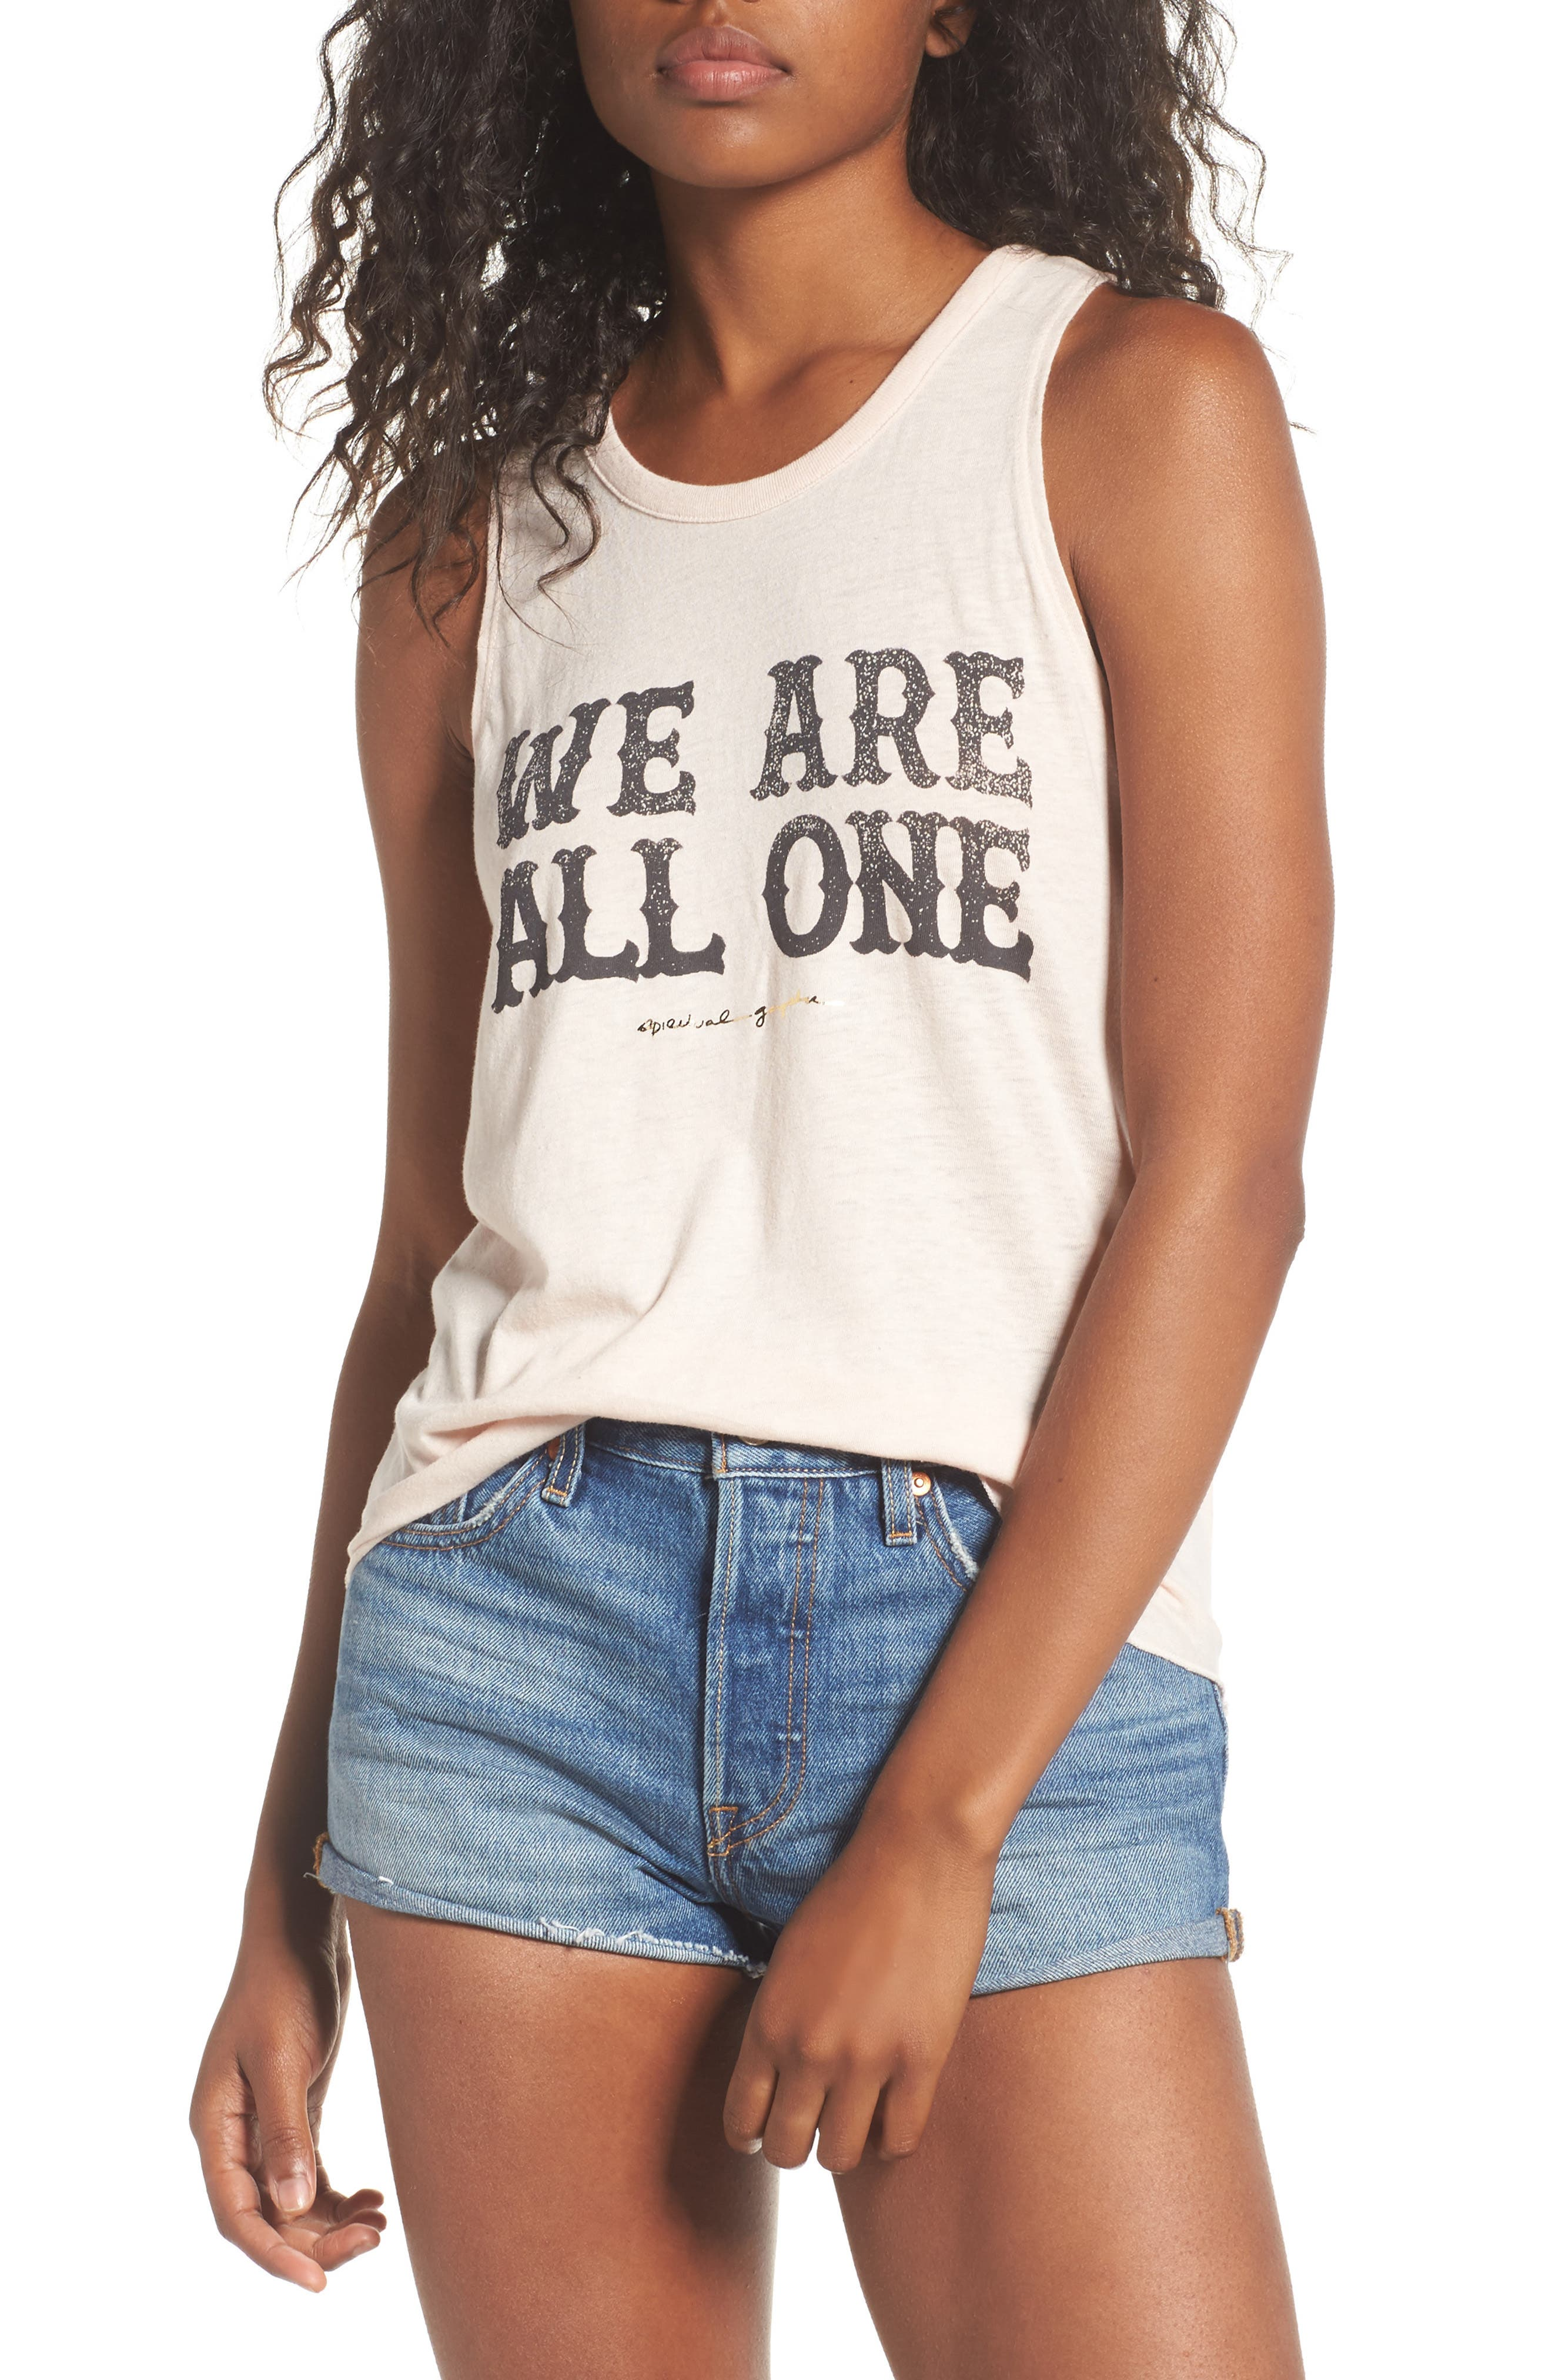 We Are One Studio Tank,                             Main thumbnail 1, color,                             900